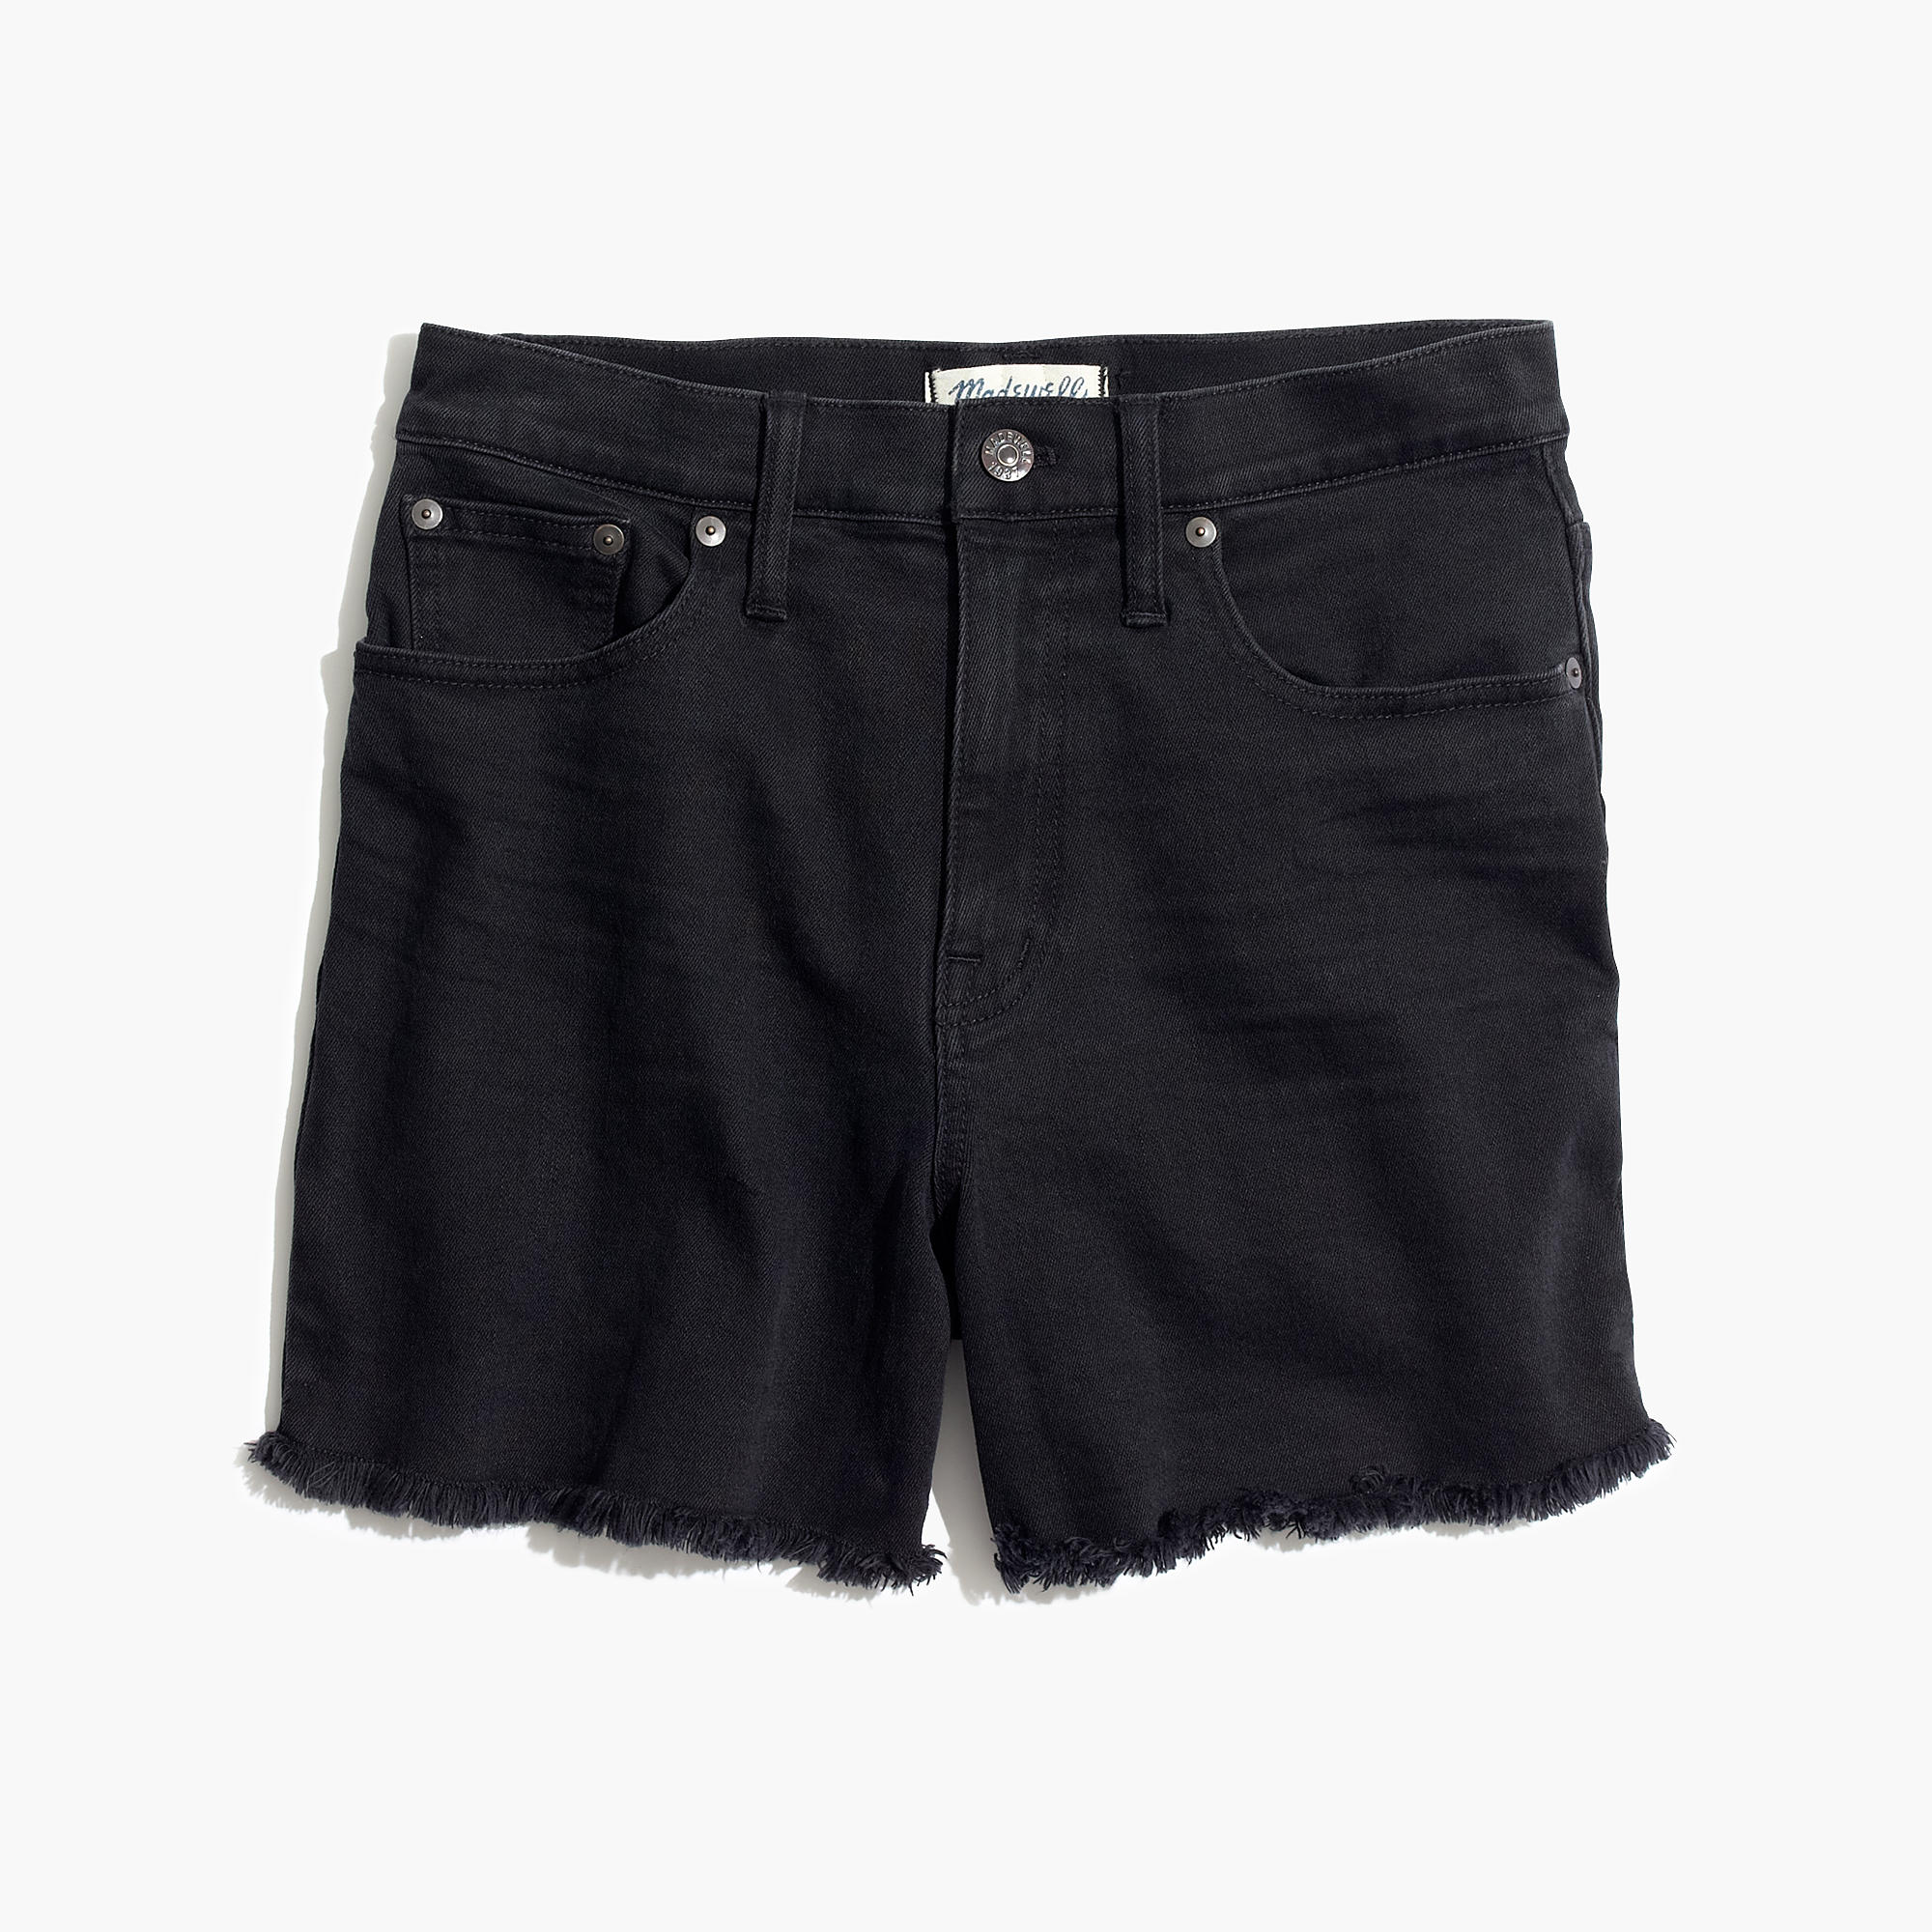 High-Rise Denim Shorts in Washed Black : shorts | Madewell